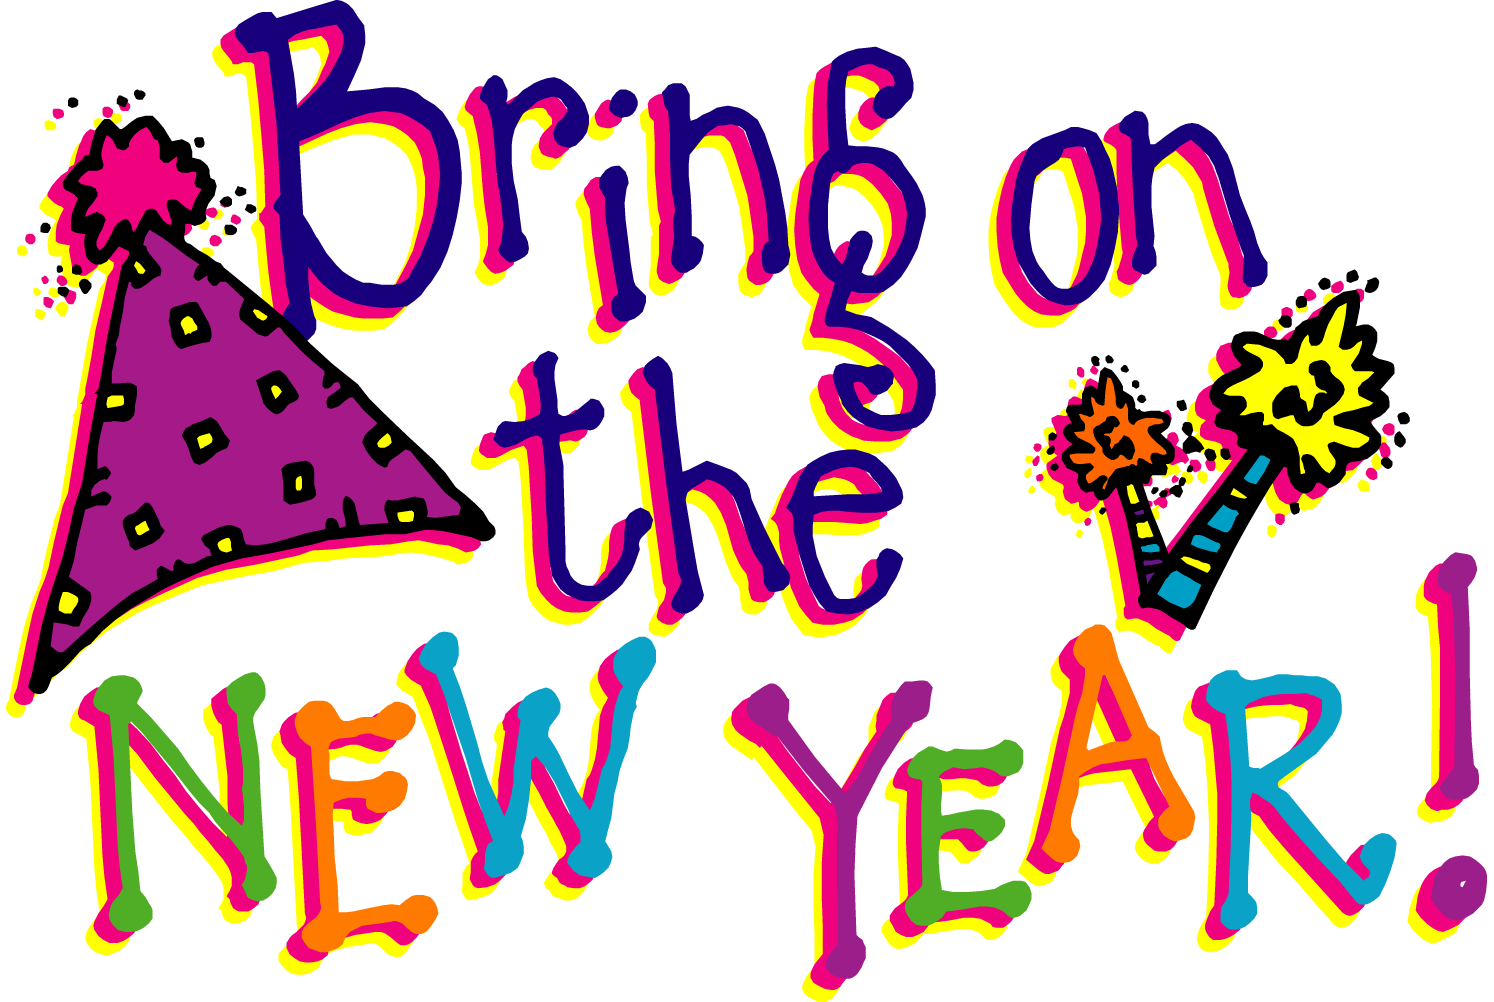 Free Happy New Year 2015 Clipart Images-Free Happy New Year 2015 Clipart Images-3